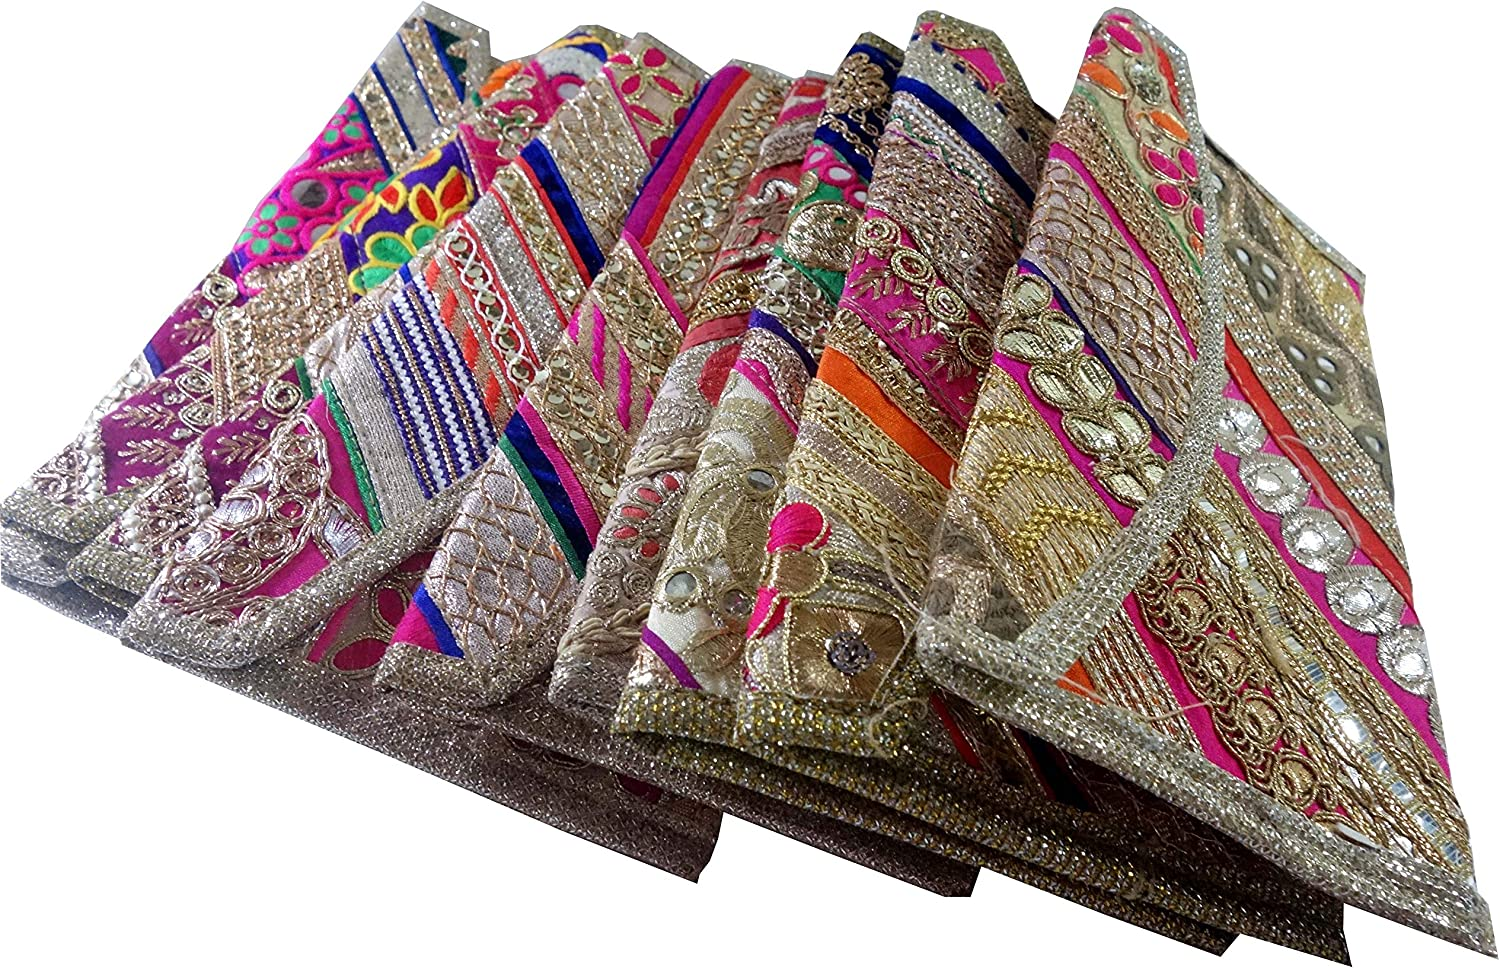 Indian Wholesale 20 pc lot Bulk Mandala Hand Bag Ethnic Clutches Purse Shoulder for Ladies by Panchal Creation-13